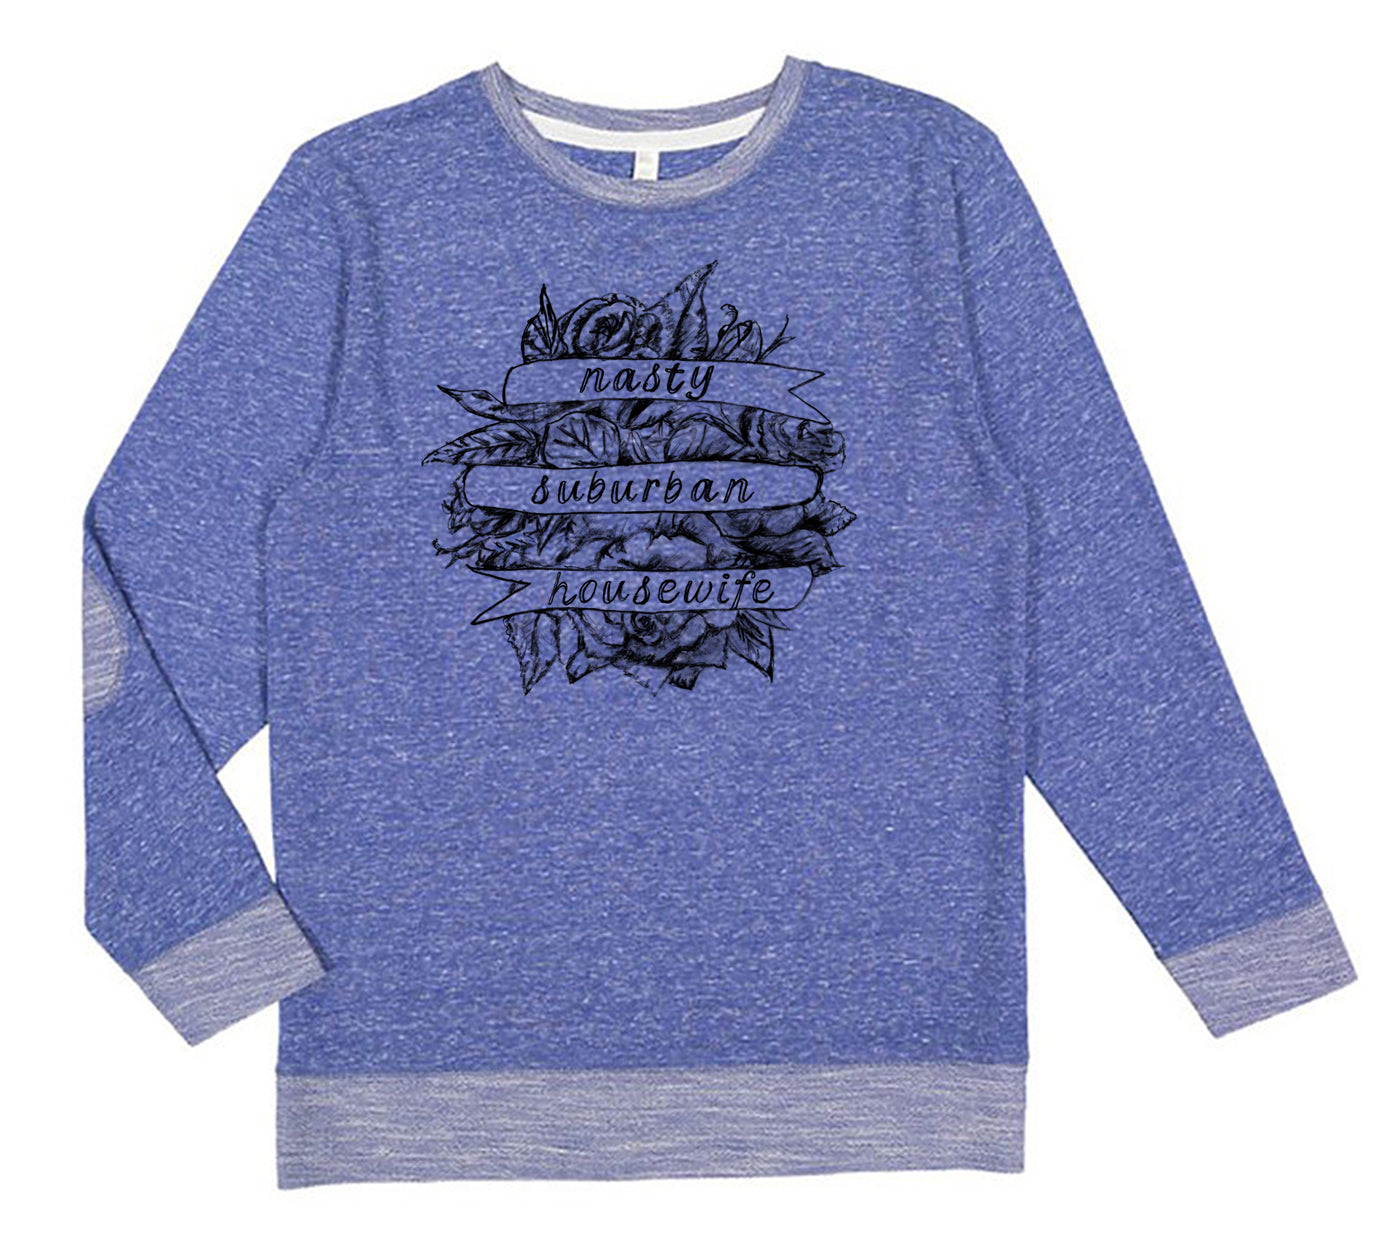 Nasty Suburban Housewife : Unisex Sweatshirt